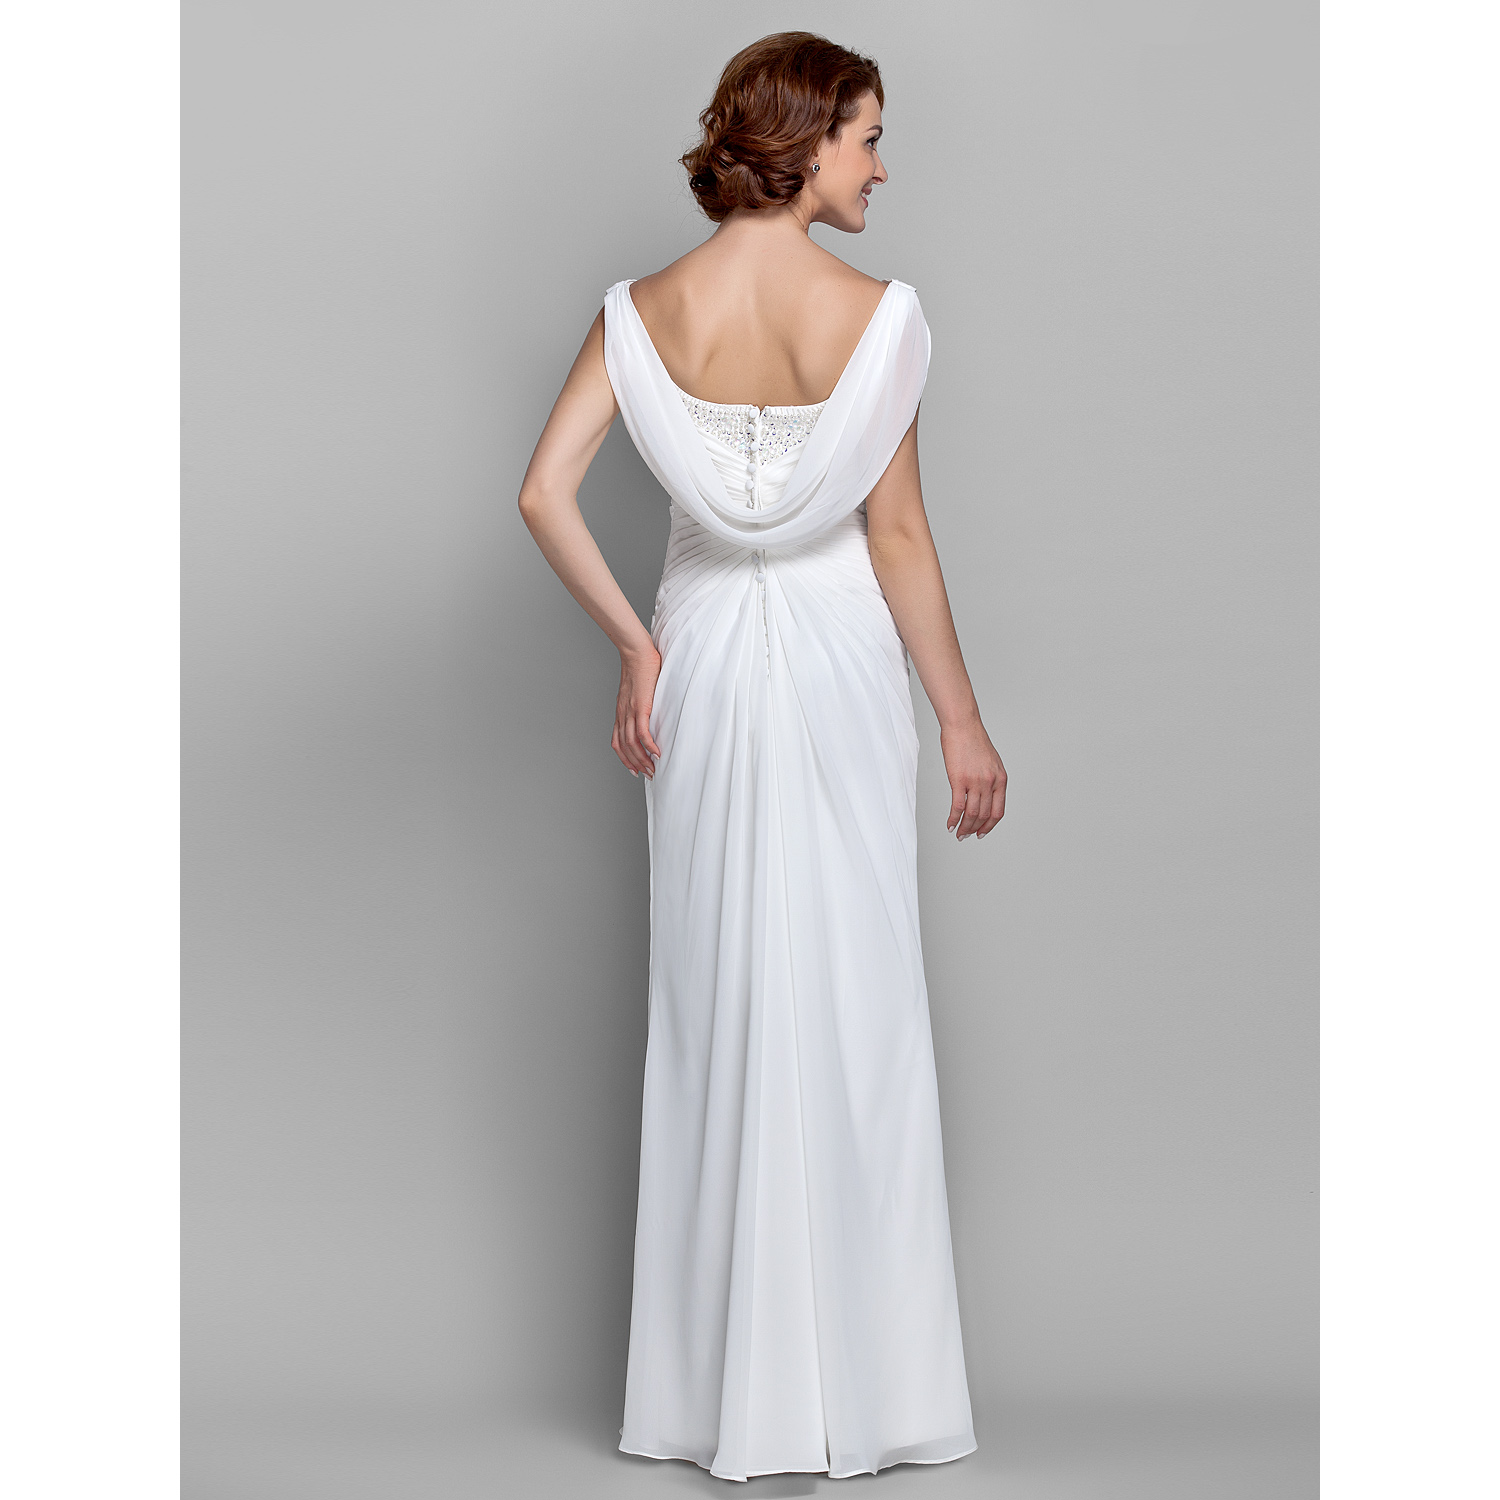 Sheath Column Cowl Neck Floor Length Chiffon Mother of the Bride Dress with Beading Buttons Crystal Detailing